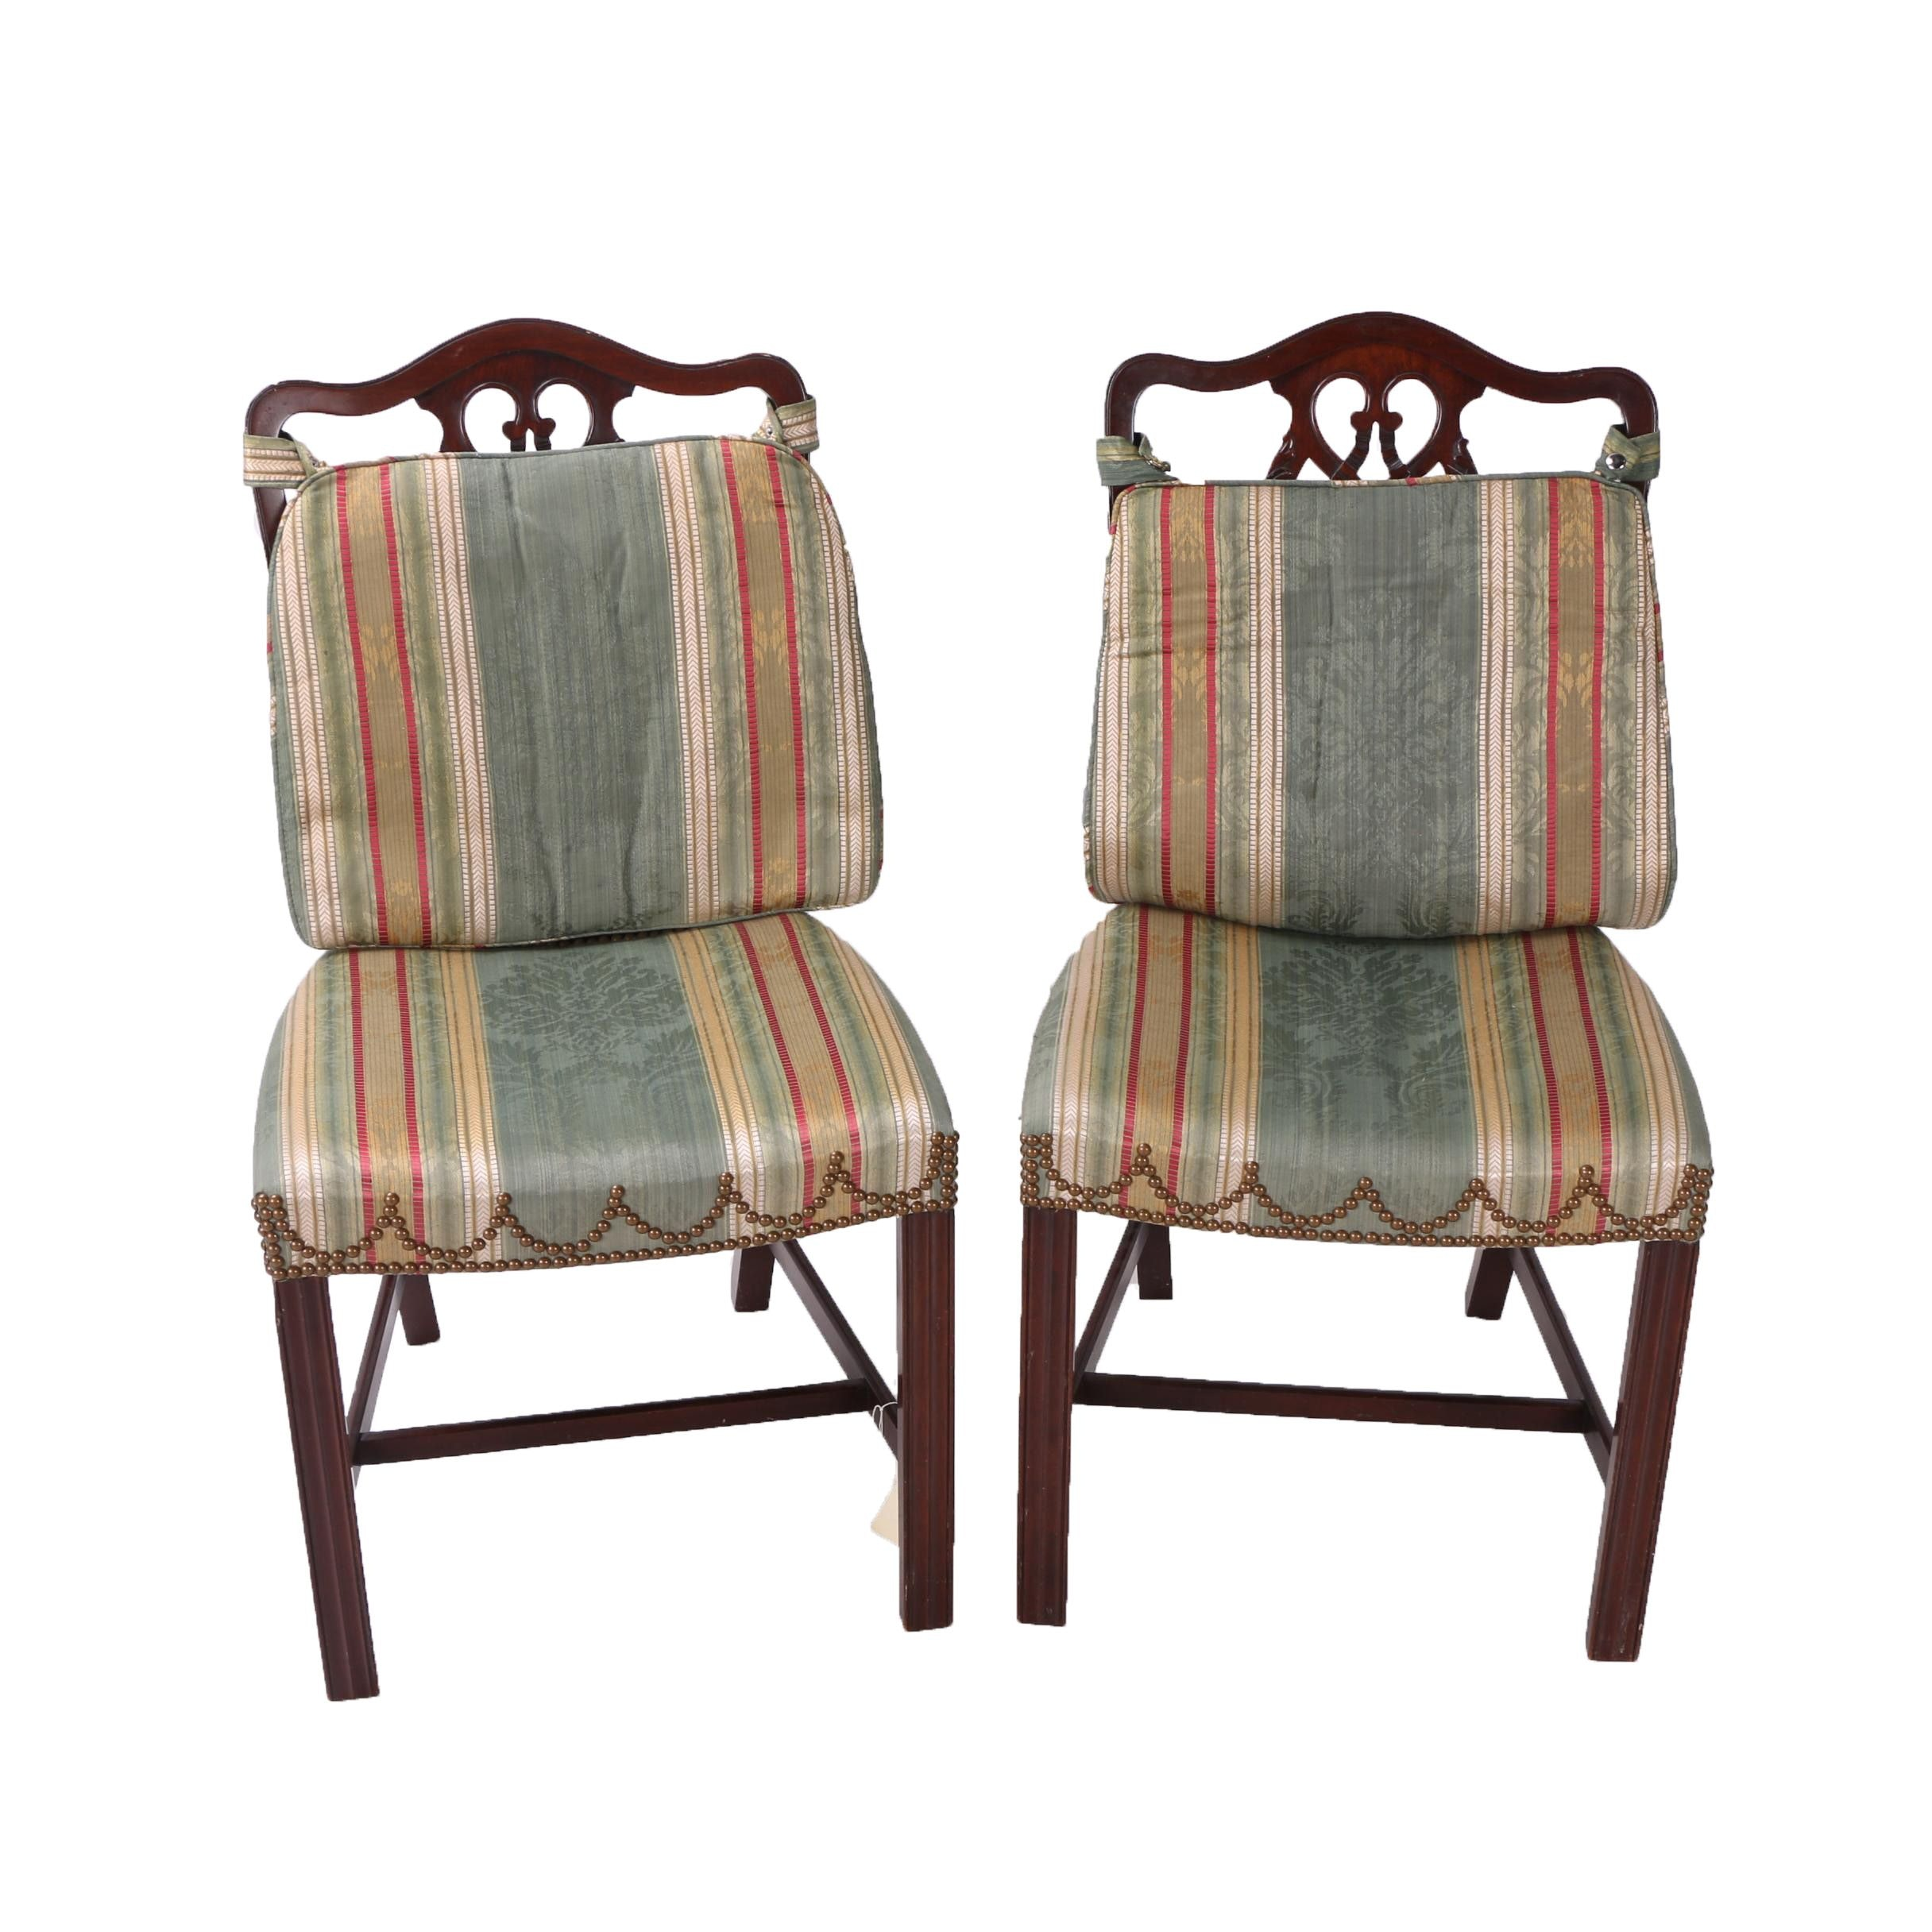 19th Century English Chippendale Style Upholstered Side Chairs